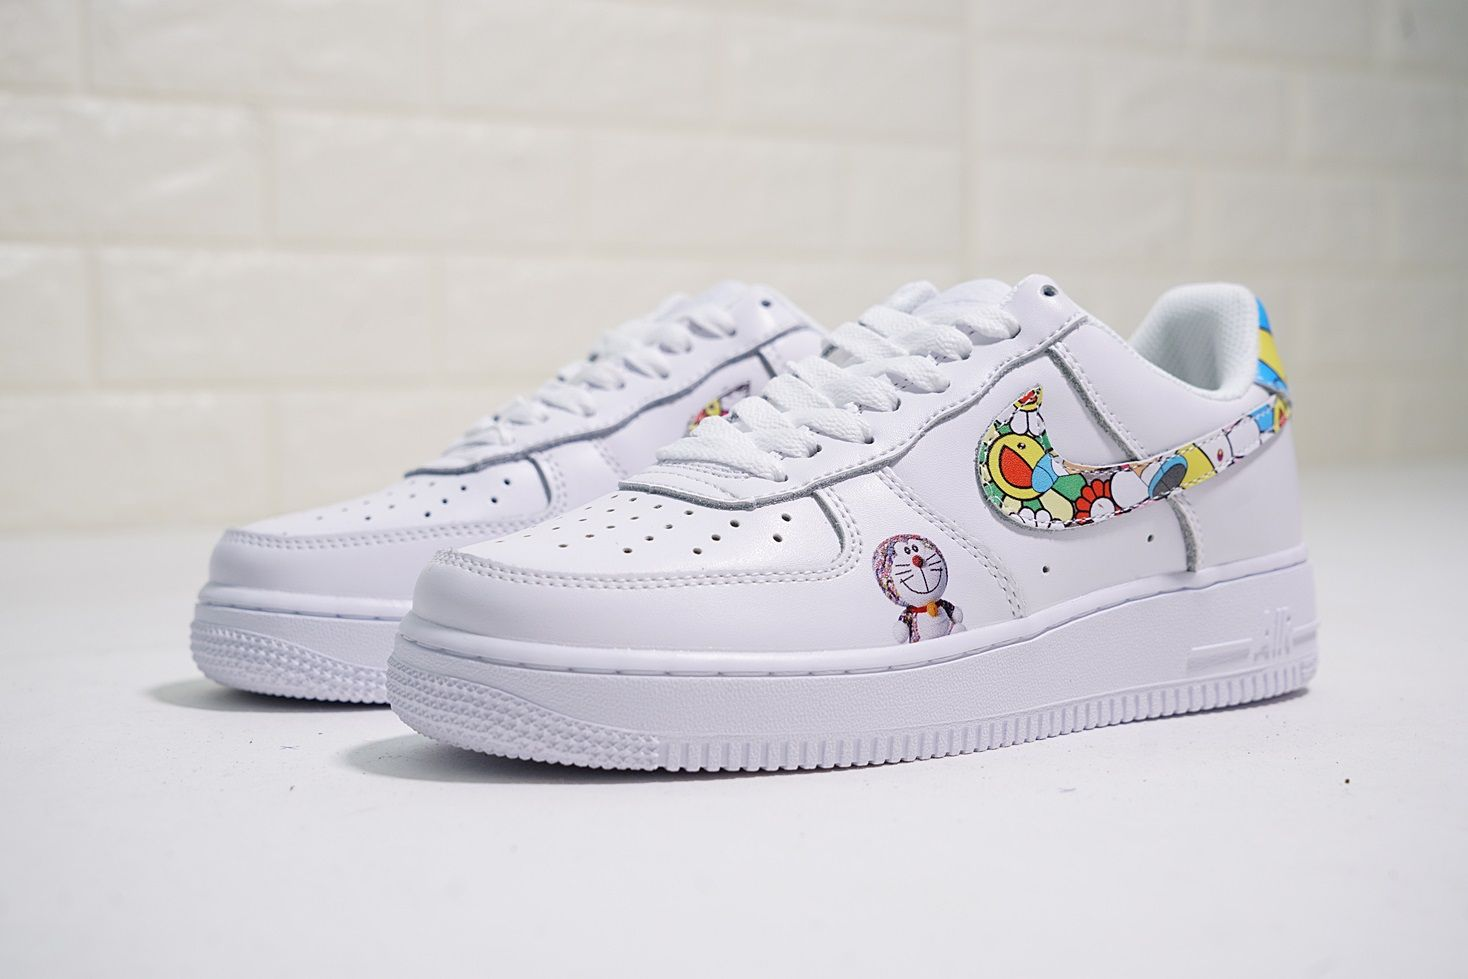 best authentic 2ebd7 df3bc takashi murakami x doraemon x nike air force 1 low 太陽花多啦A夢